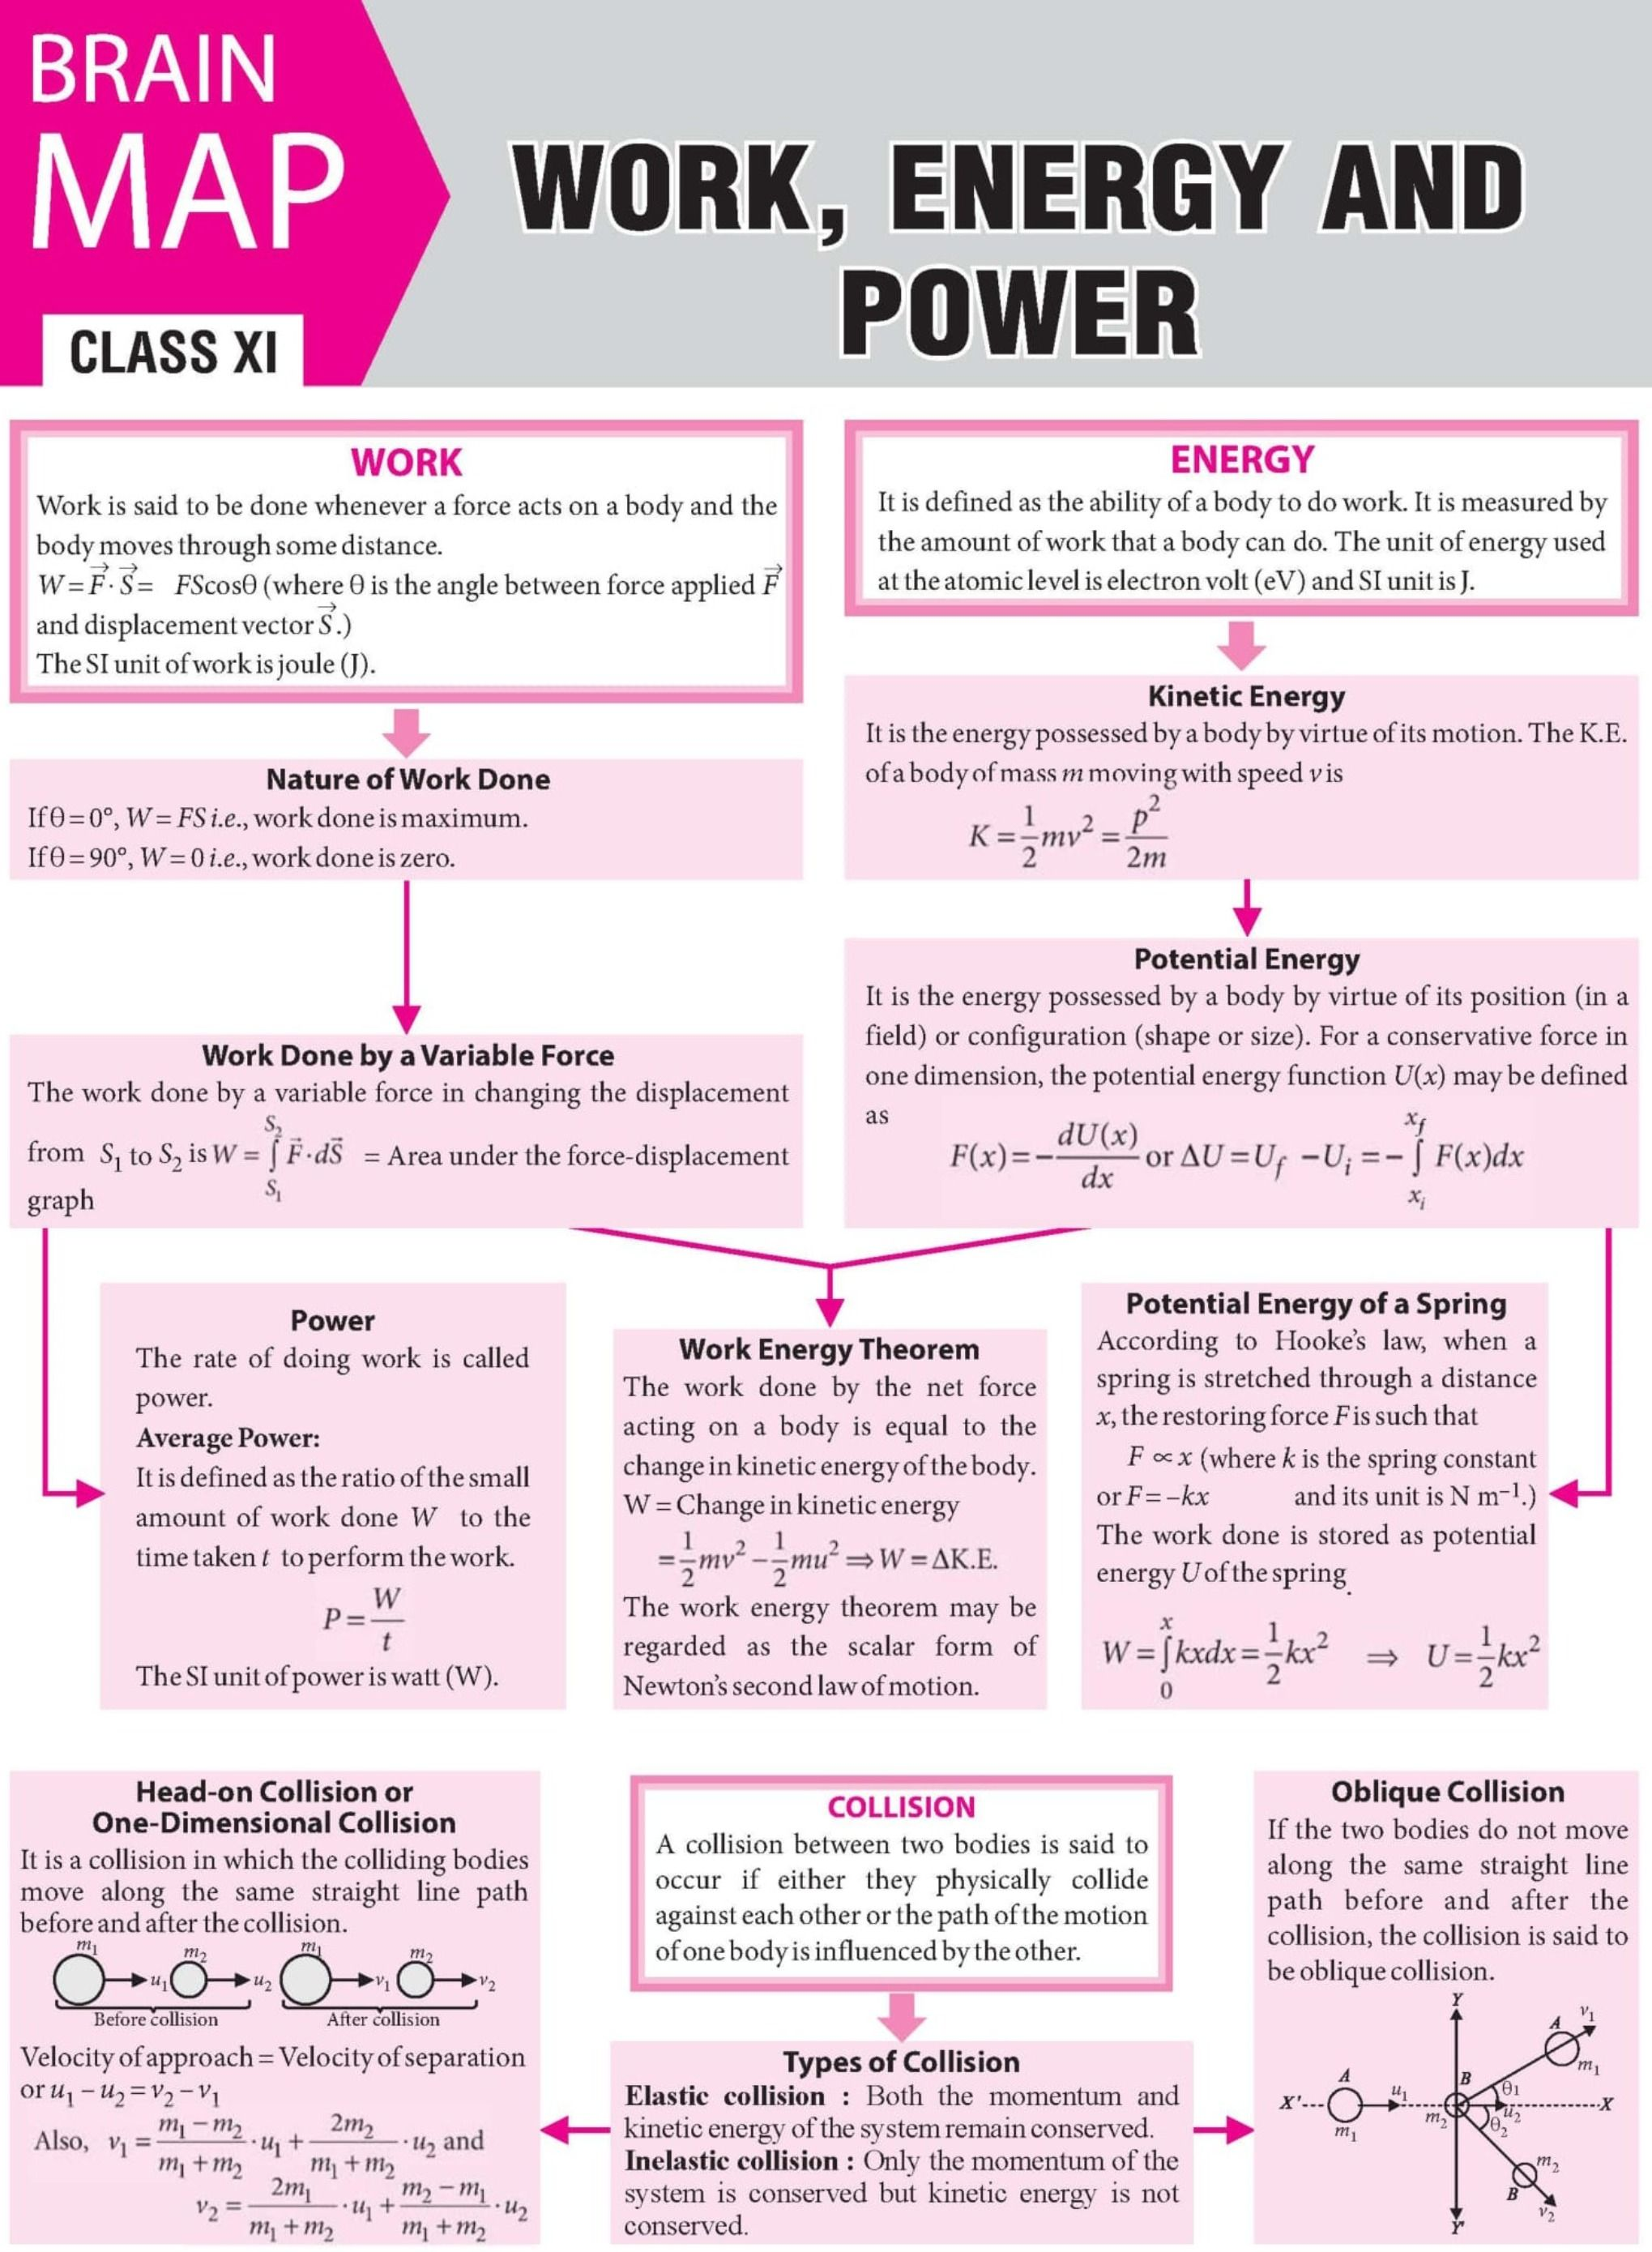 Work Energy And Power 2016 Vol 11 Mtg Physics For You Learn Physics Basic Physics Work Energy And Power